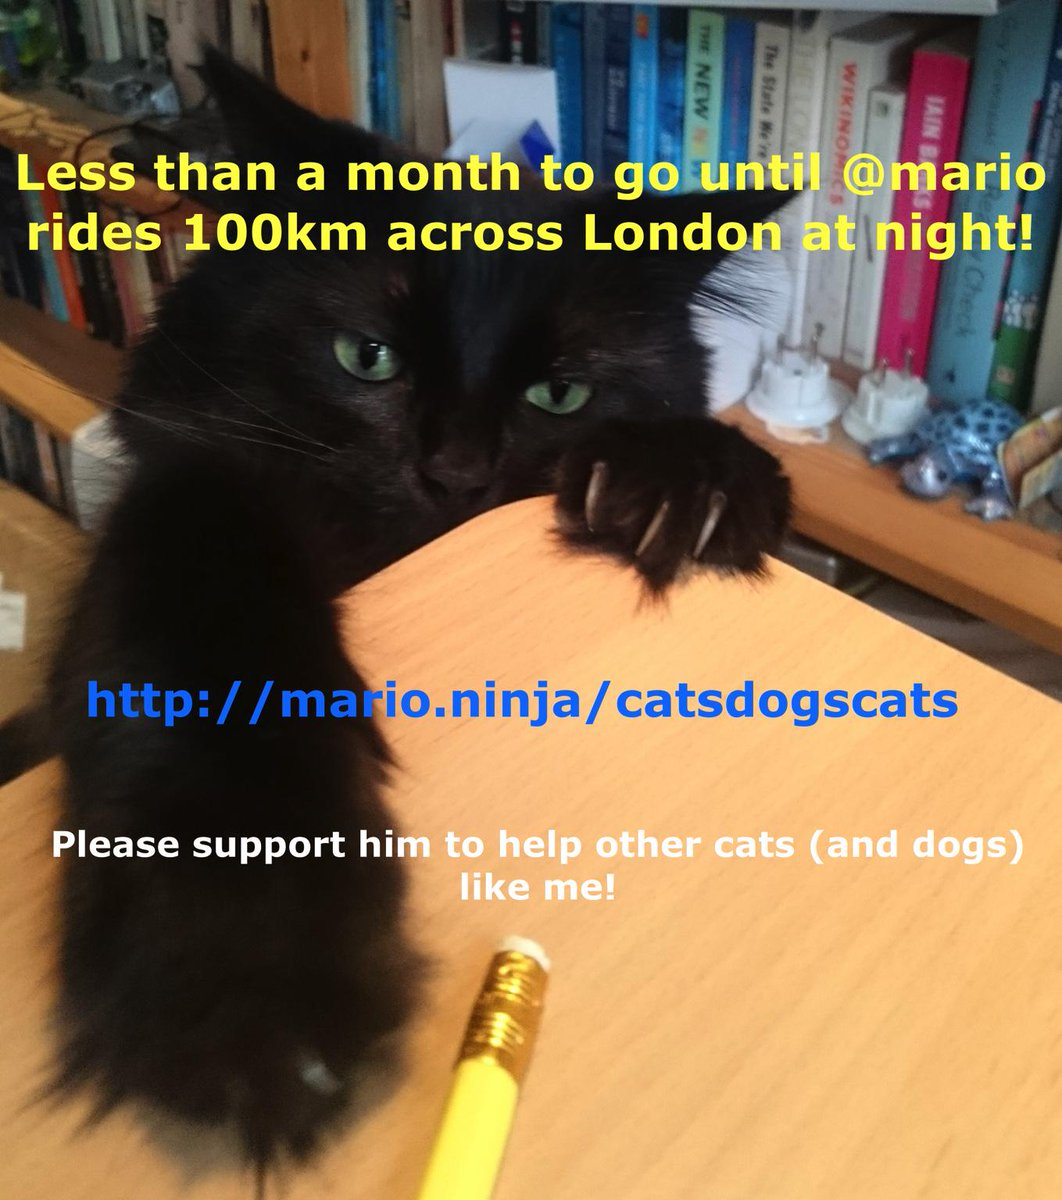 Under a month until my 100km night ride for the cats & dogs of @BDCH - appreciate any support! http://t.co/3cGPrKF7L5 http://t.co/zwaICFWoJt